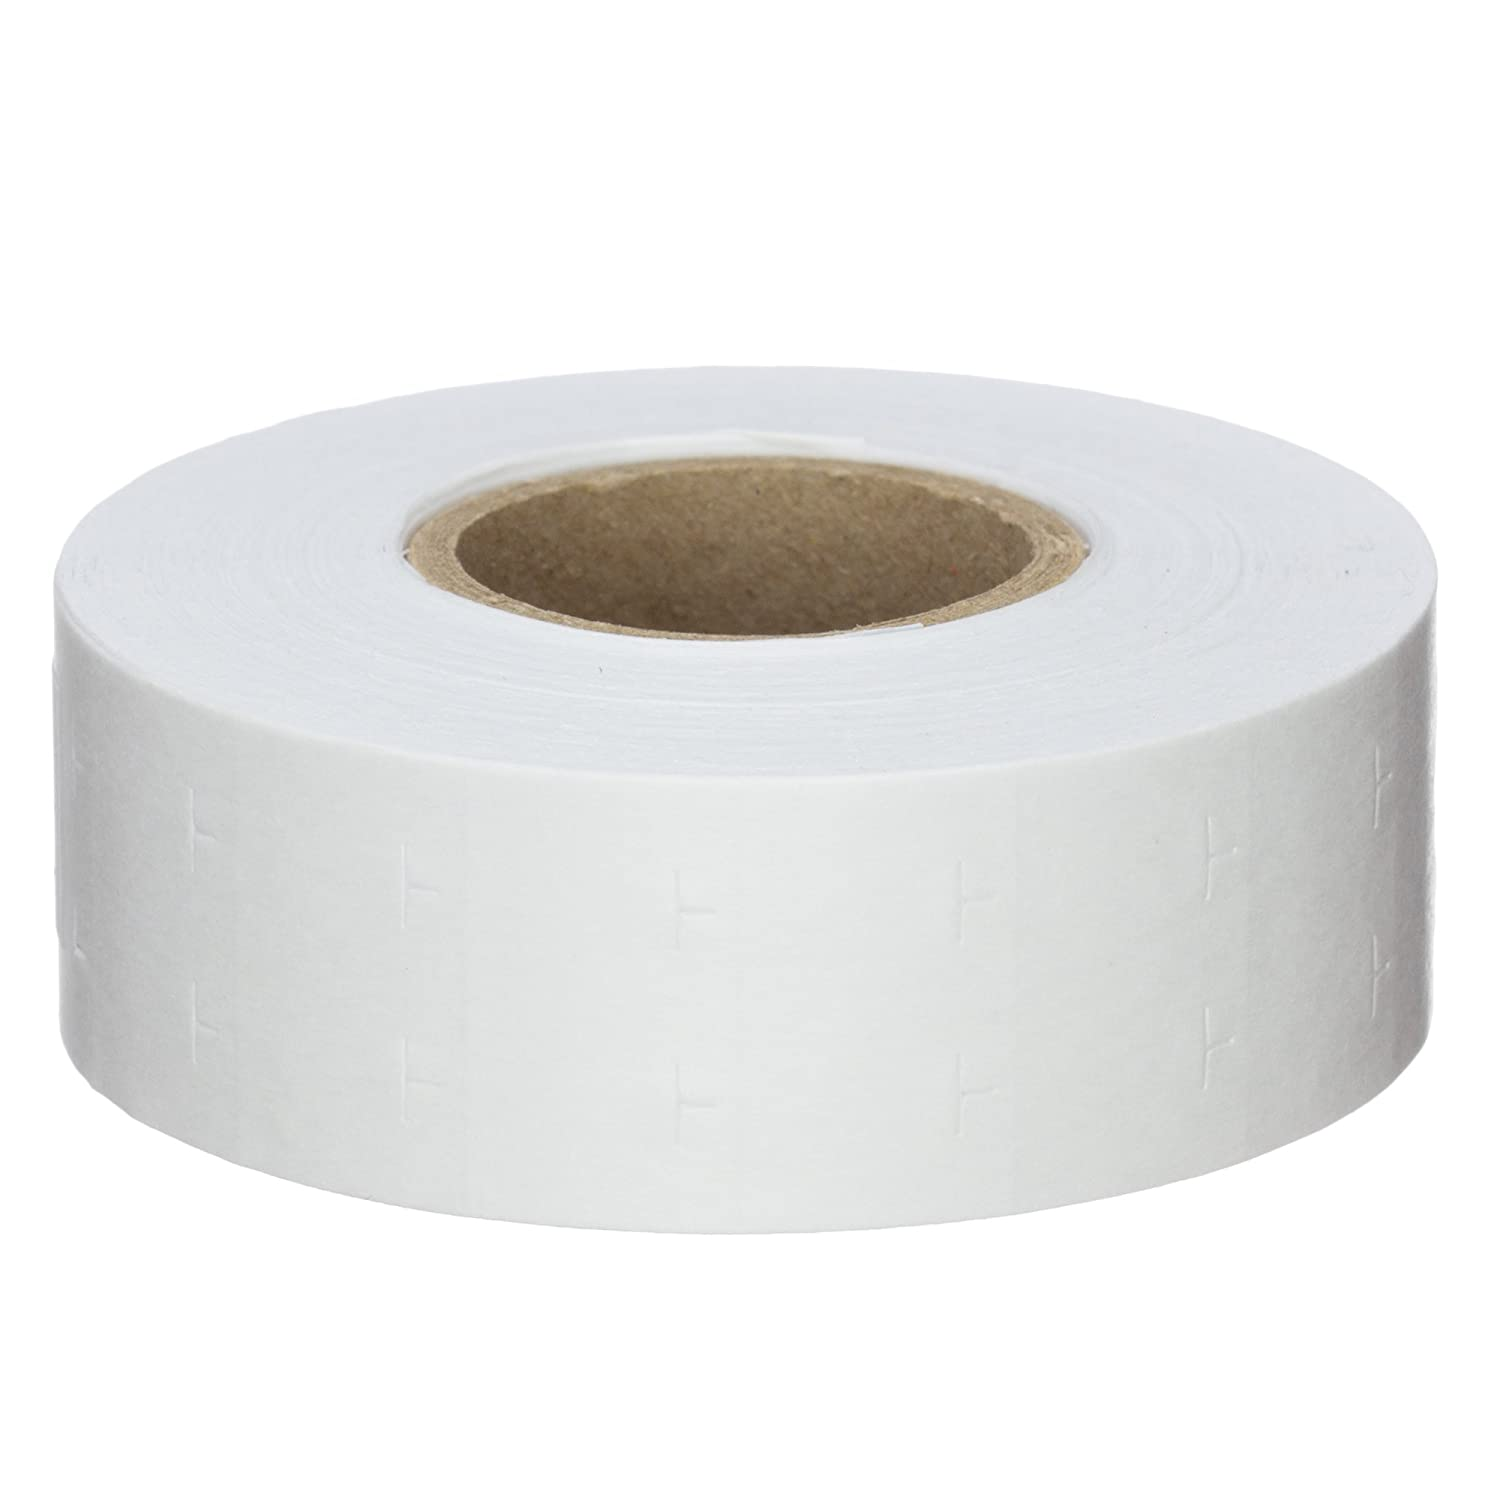 White 9,600 Labels Pack with 8 Rolls Labels for Us Garvey 2212 Compatible Labels